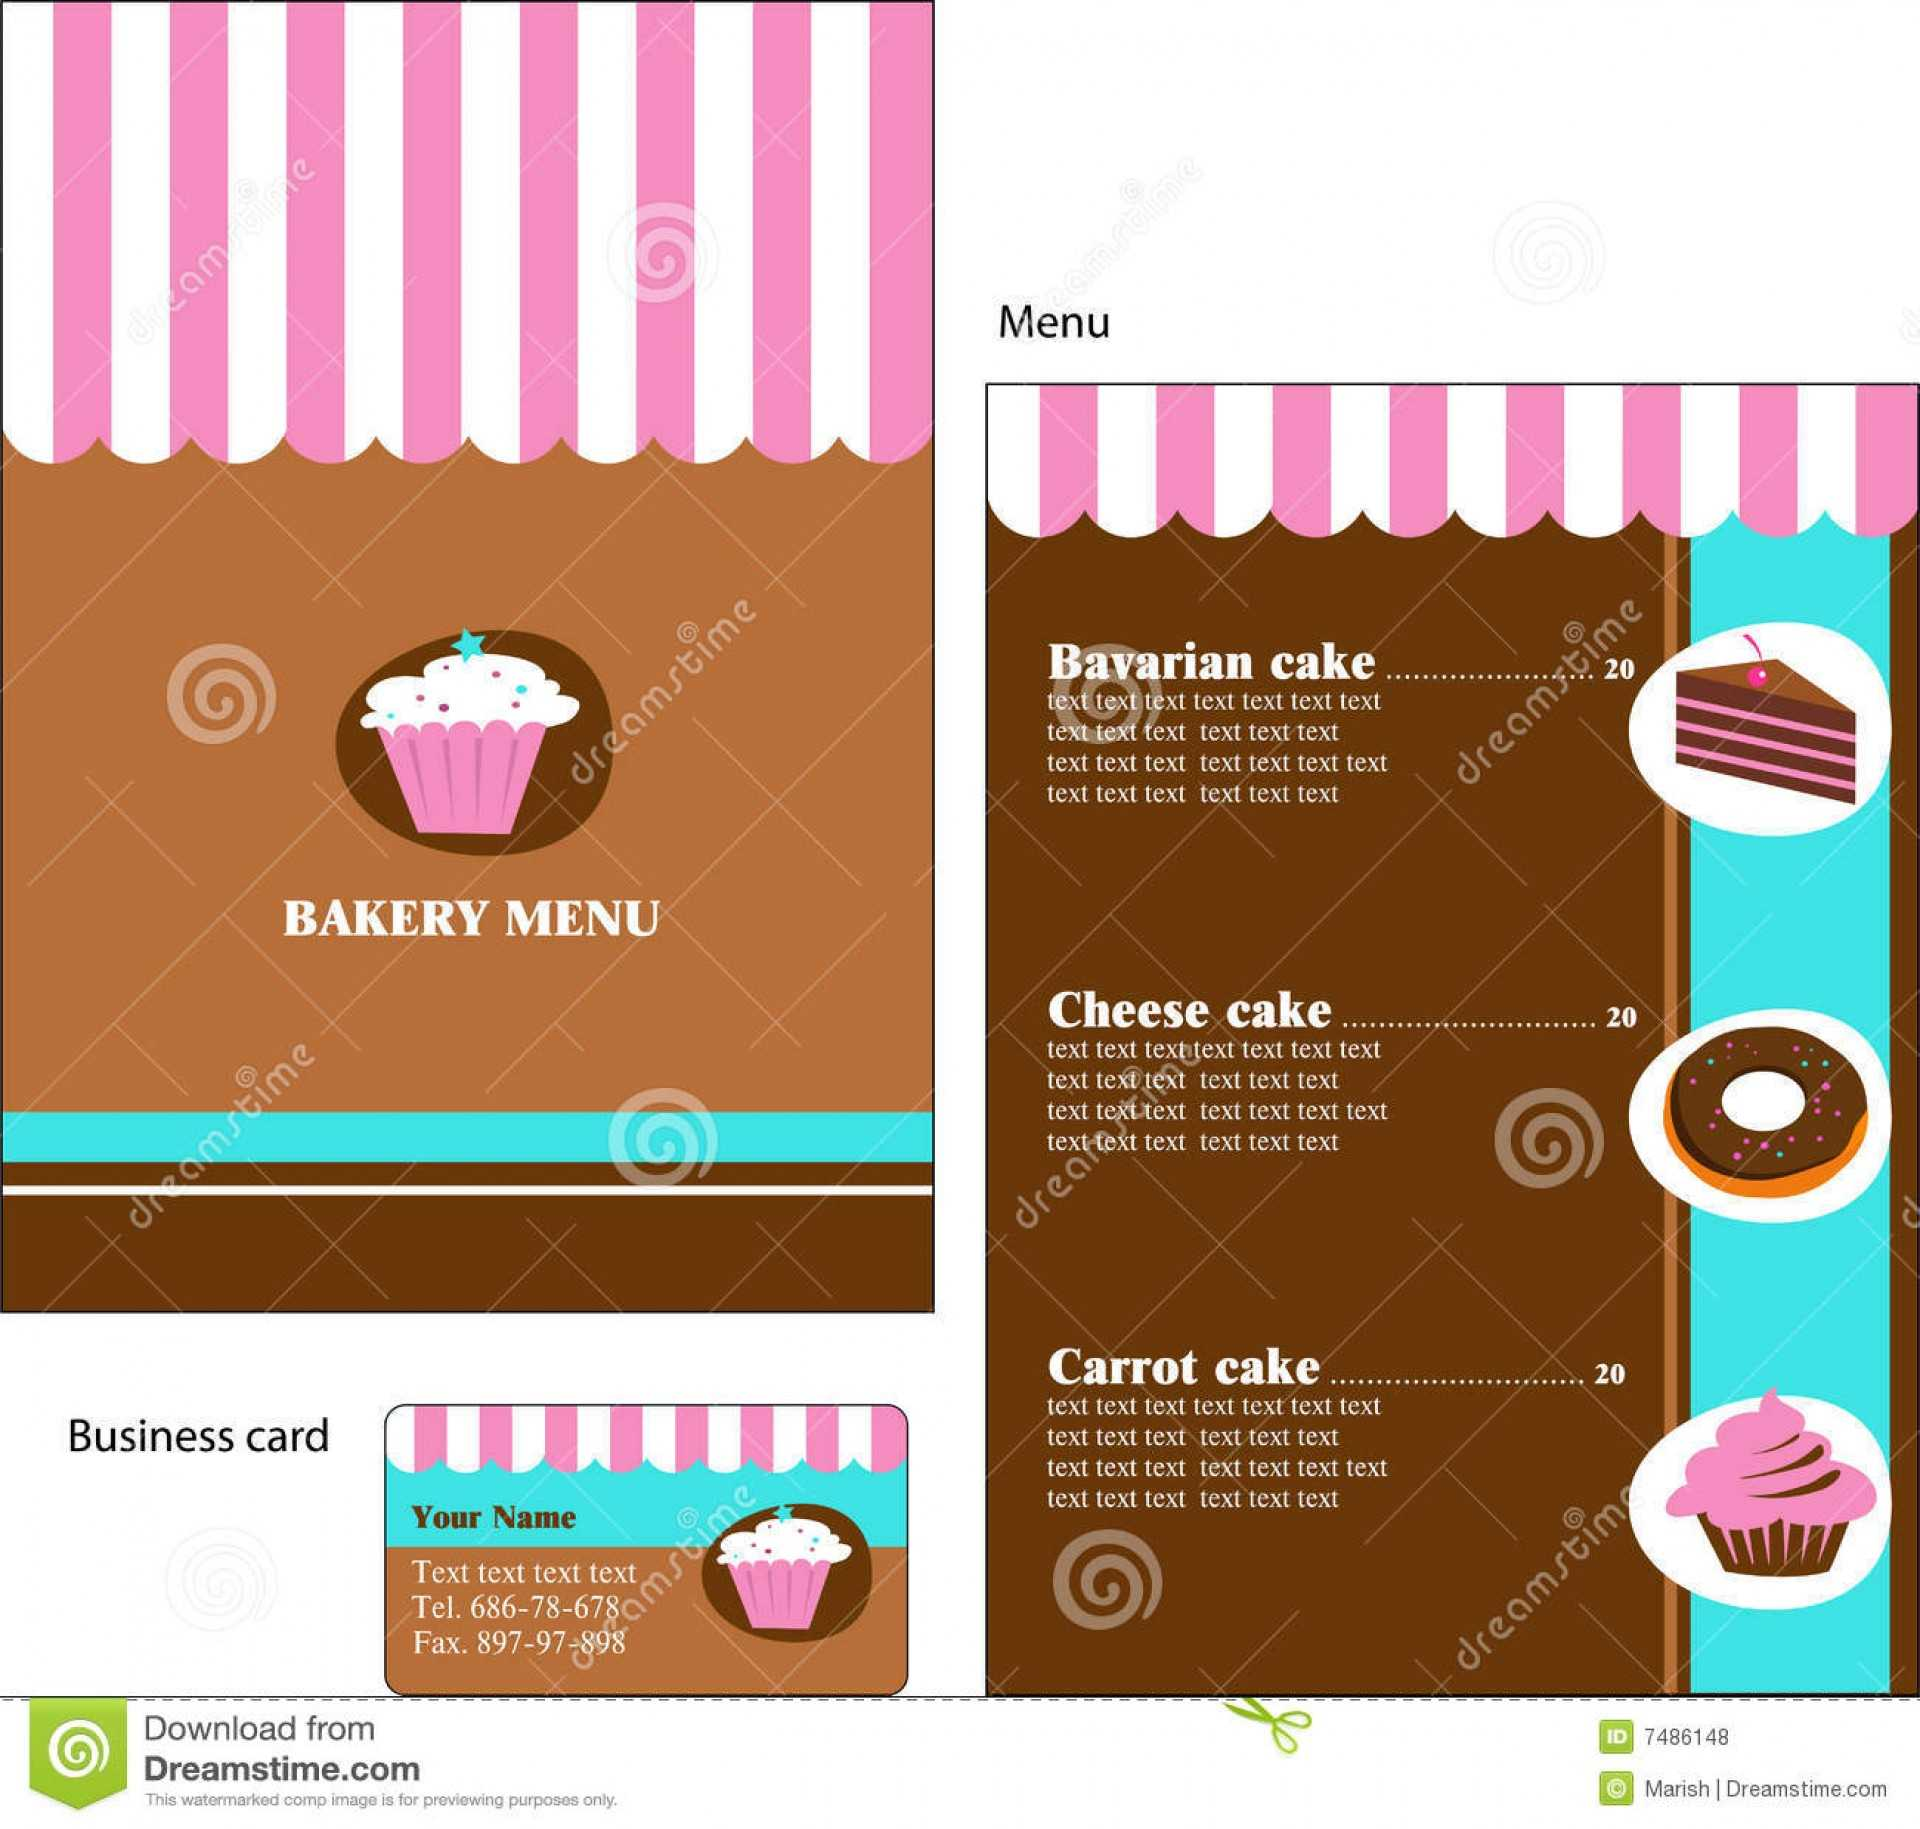 017 Cover2 Template Ideas Menu Card Templates Free Download Intended For Free Bakery Menu Templates Download